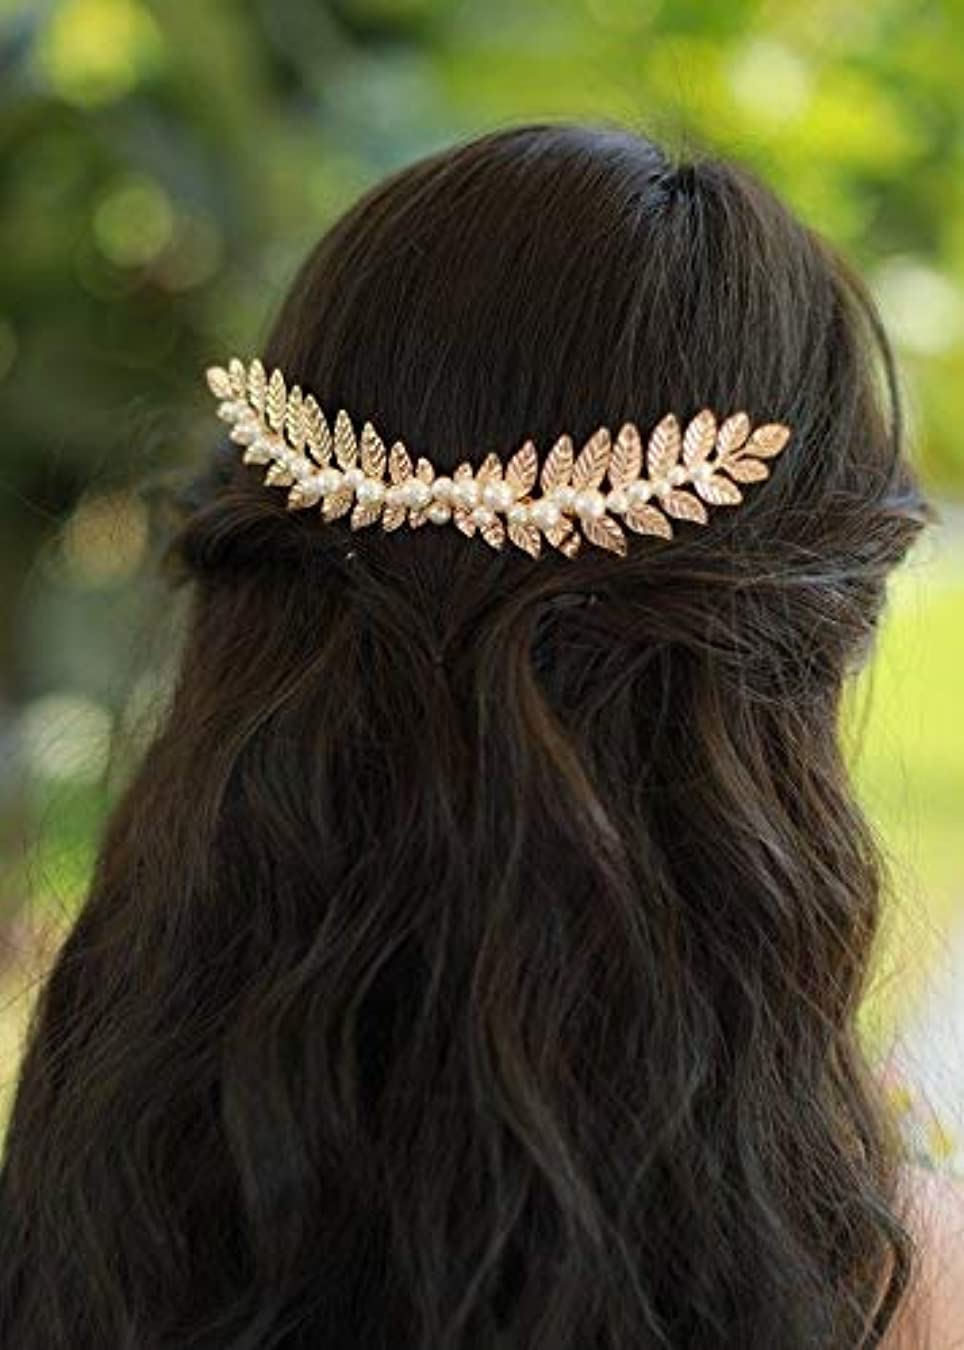 ふける突き出す悲鳴Missgrace Gold Leaf Hair Comb Wedding Hair Accessories Bride Floral Hair Comb Head Pieces Hair Clips Pins Jewelry...